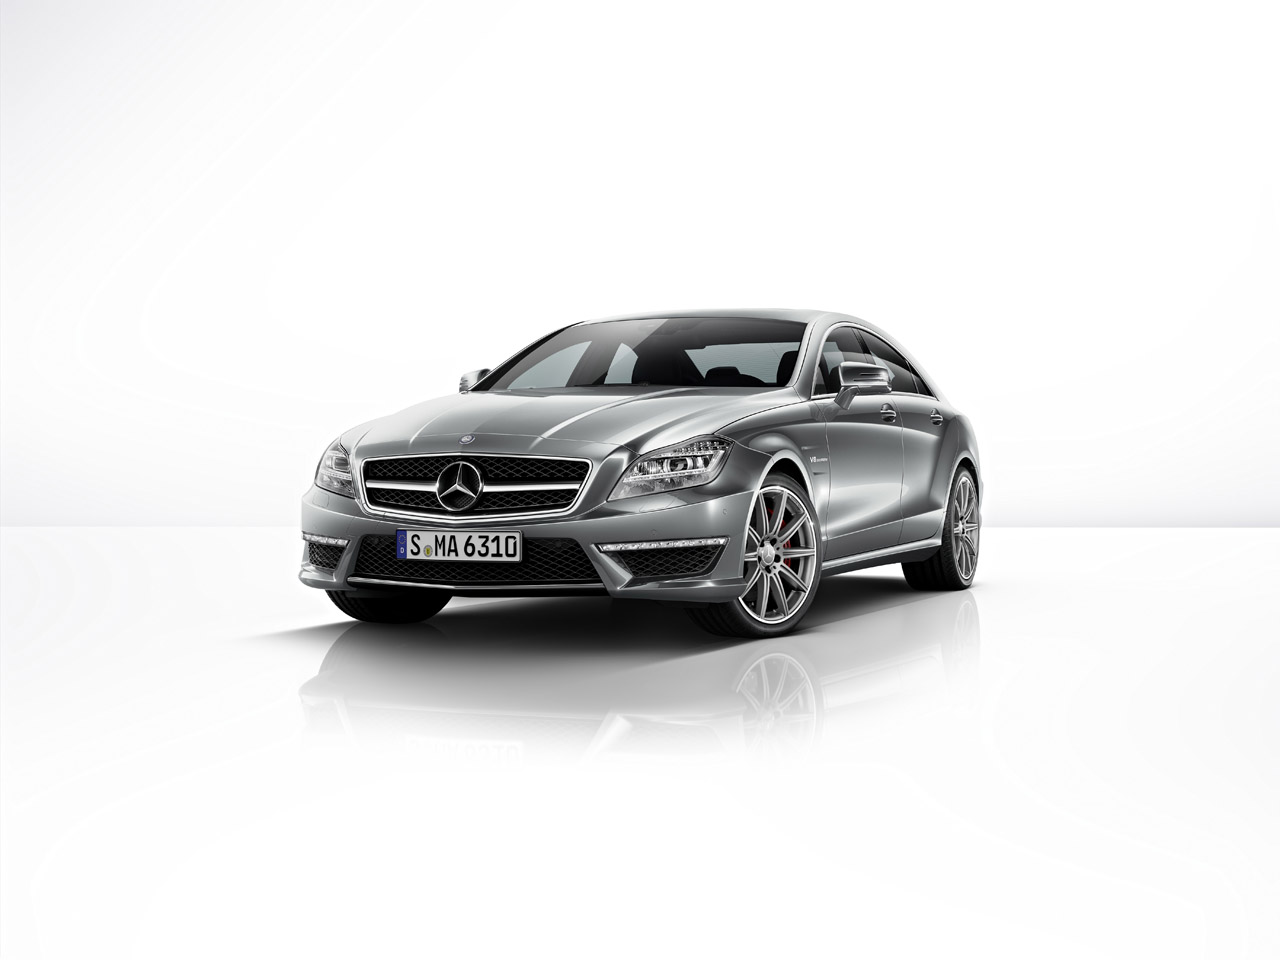 Mercedes benz cls63 amg gets same awd power boost as new for 2013 mercedes benz cls 63 amg